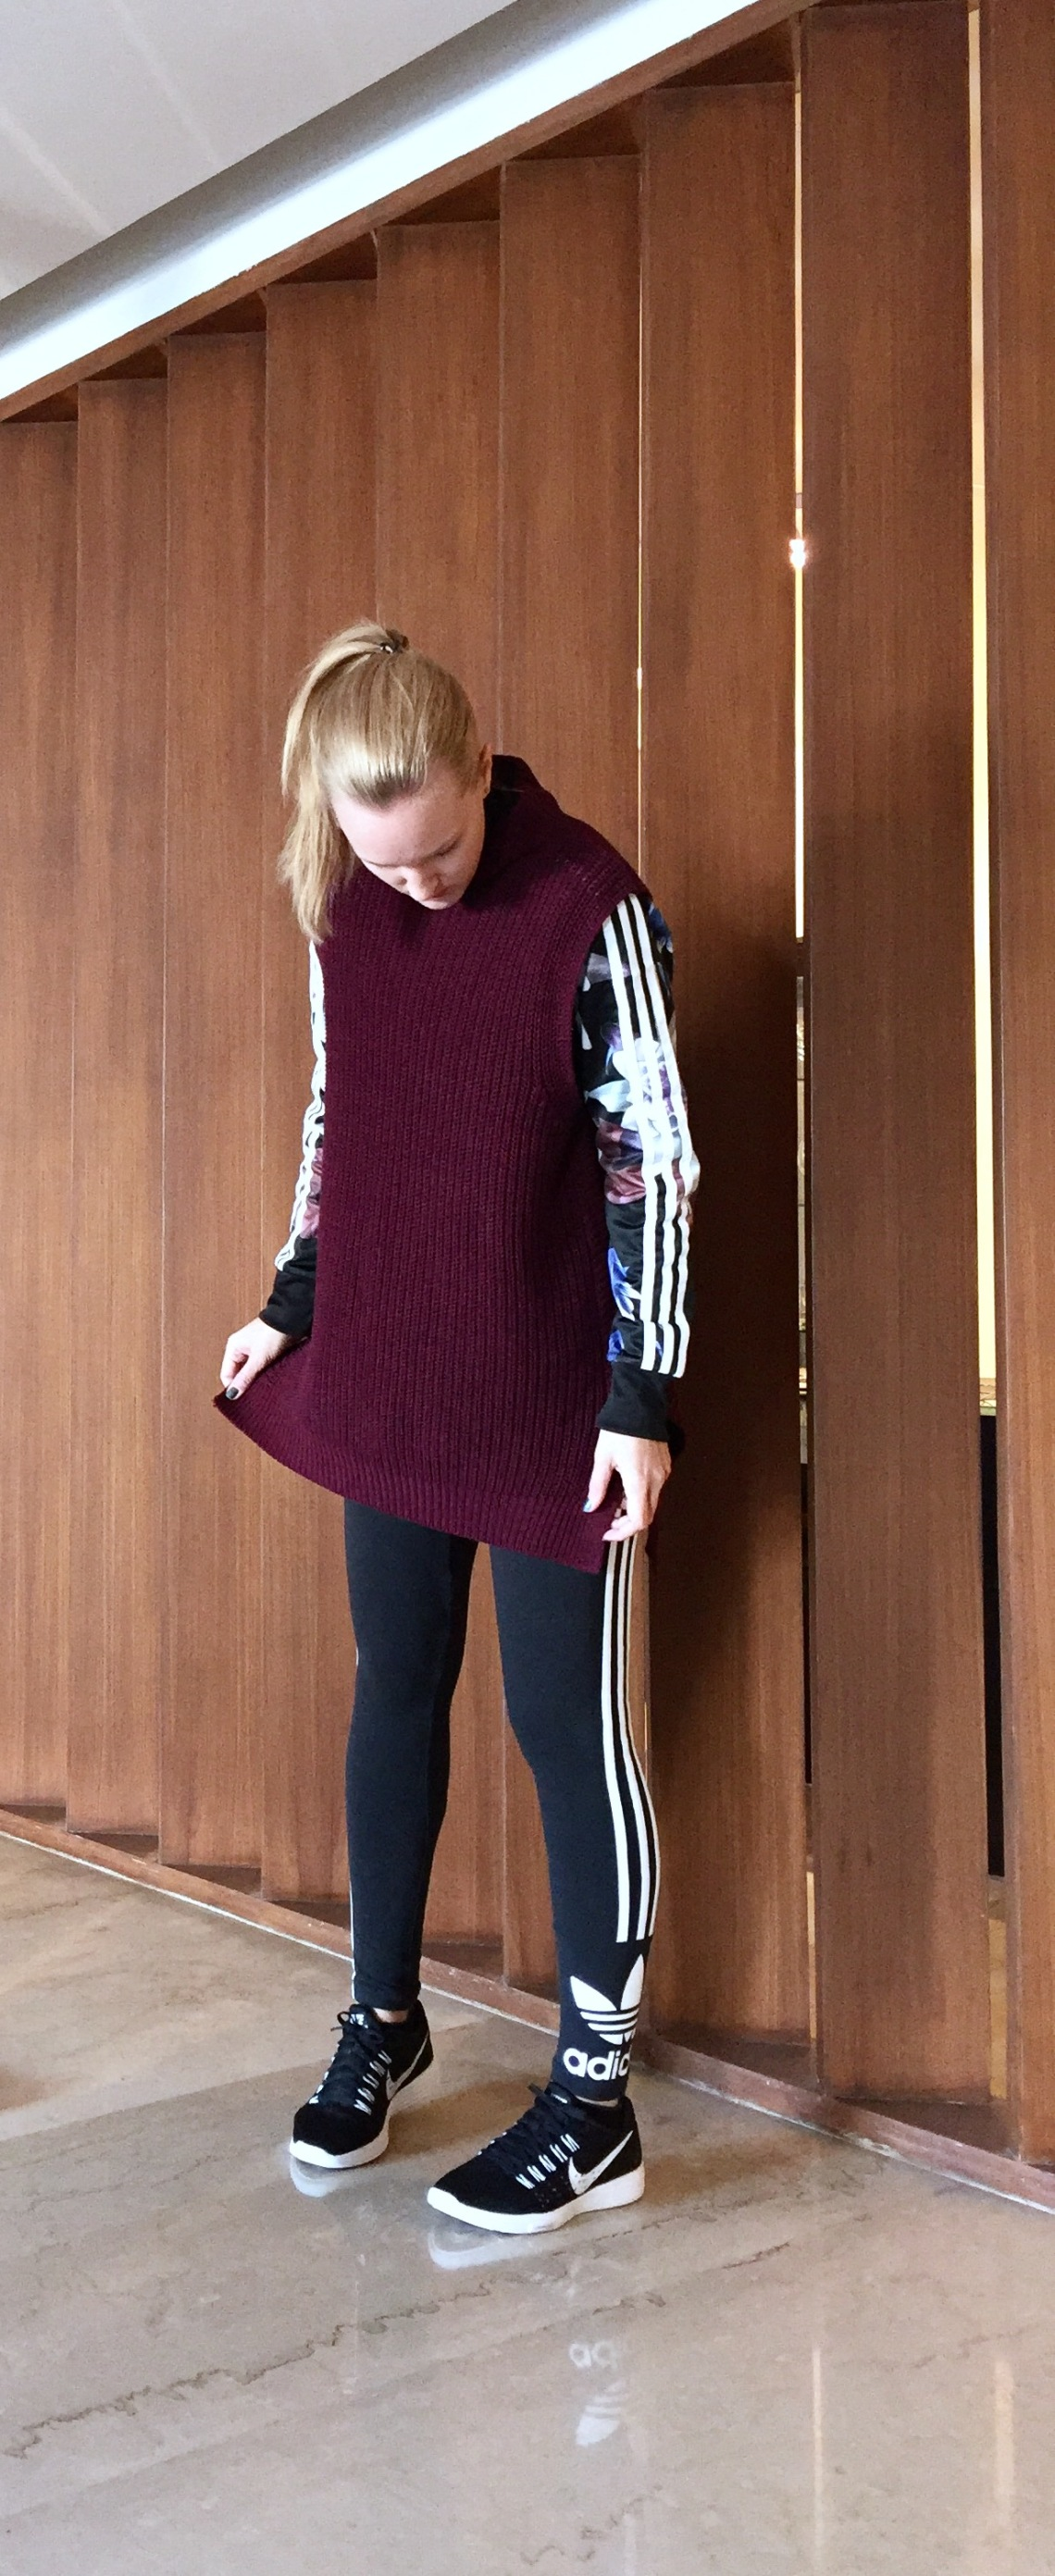 Adidads outfit